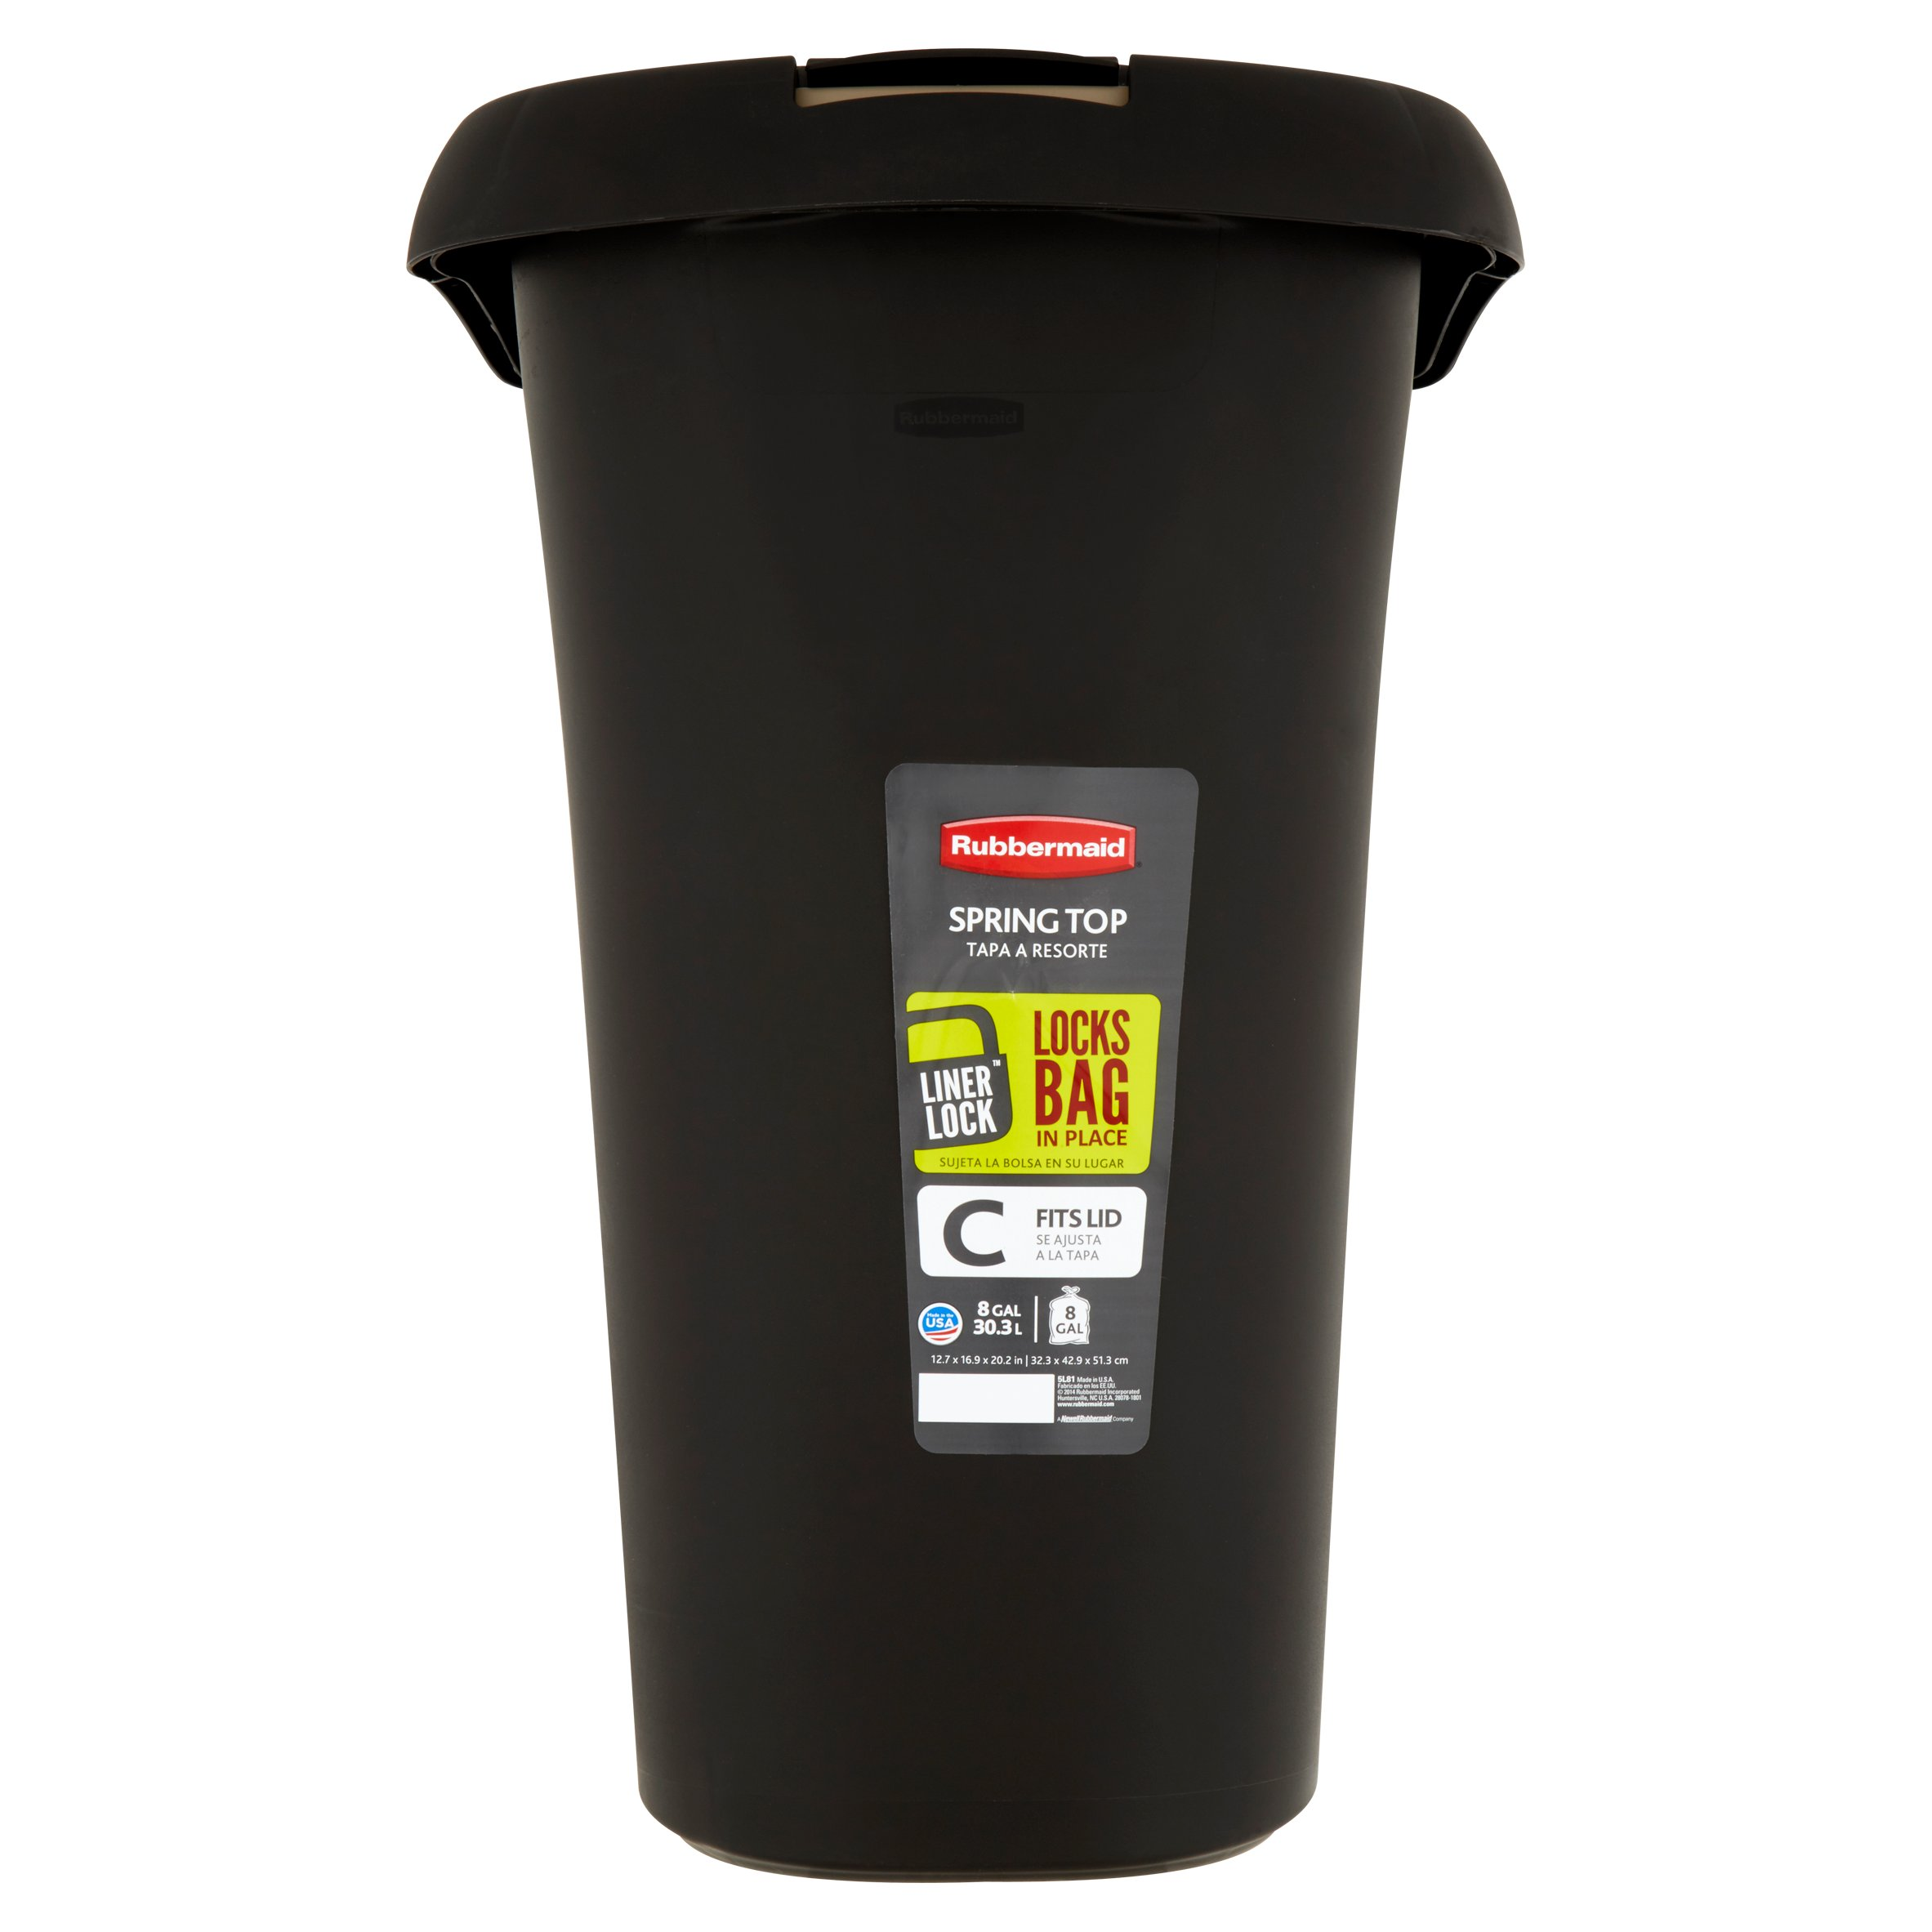 rubbermaid liner lock fits lid spring top 8 gal trash can